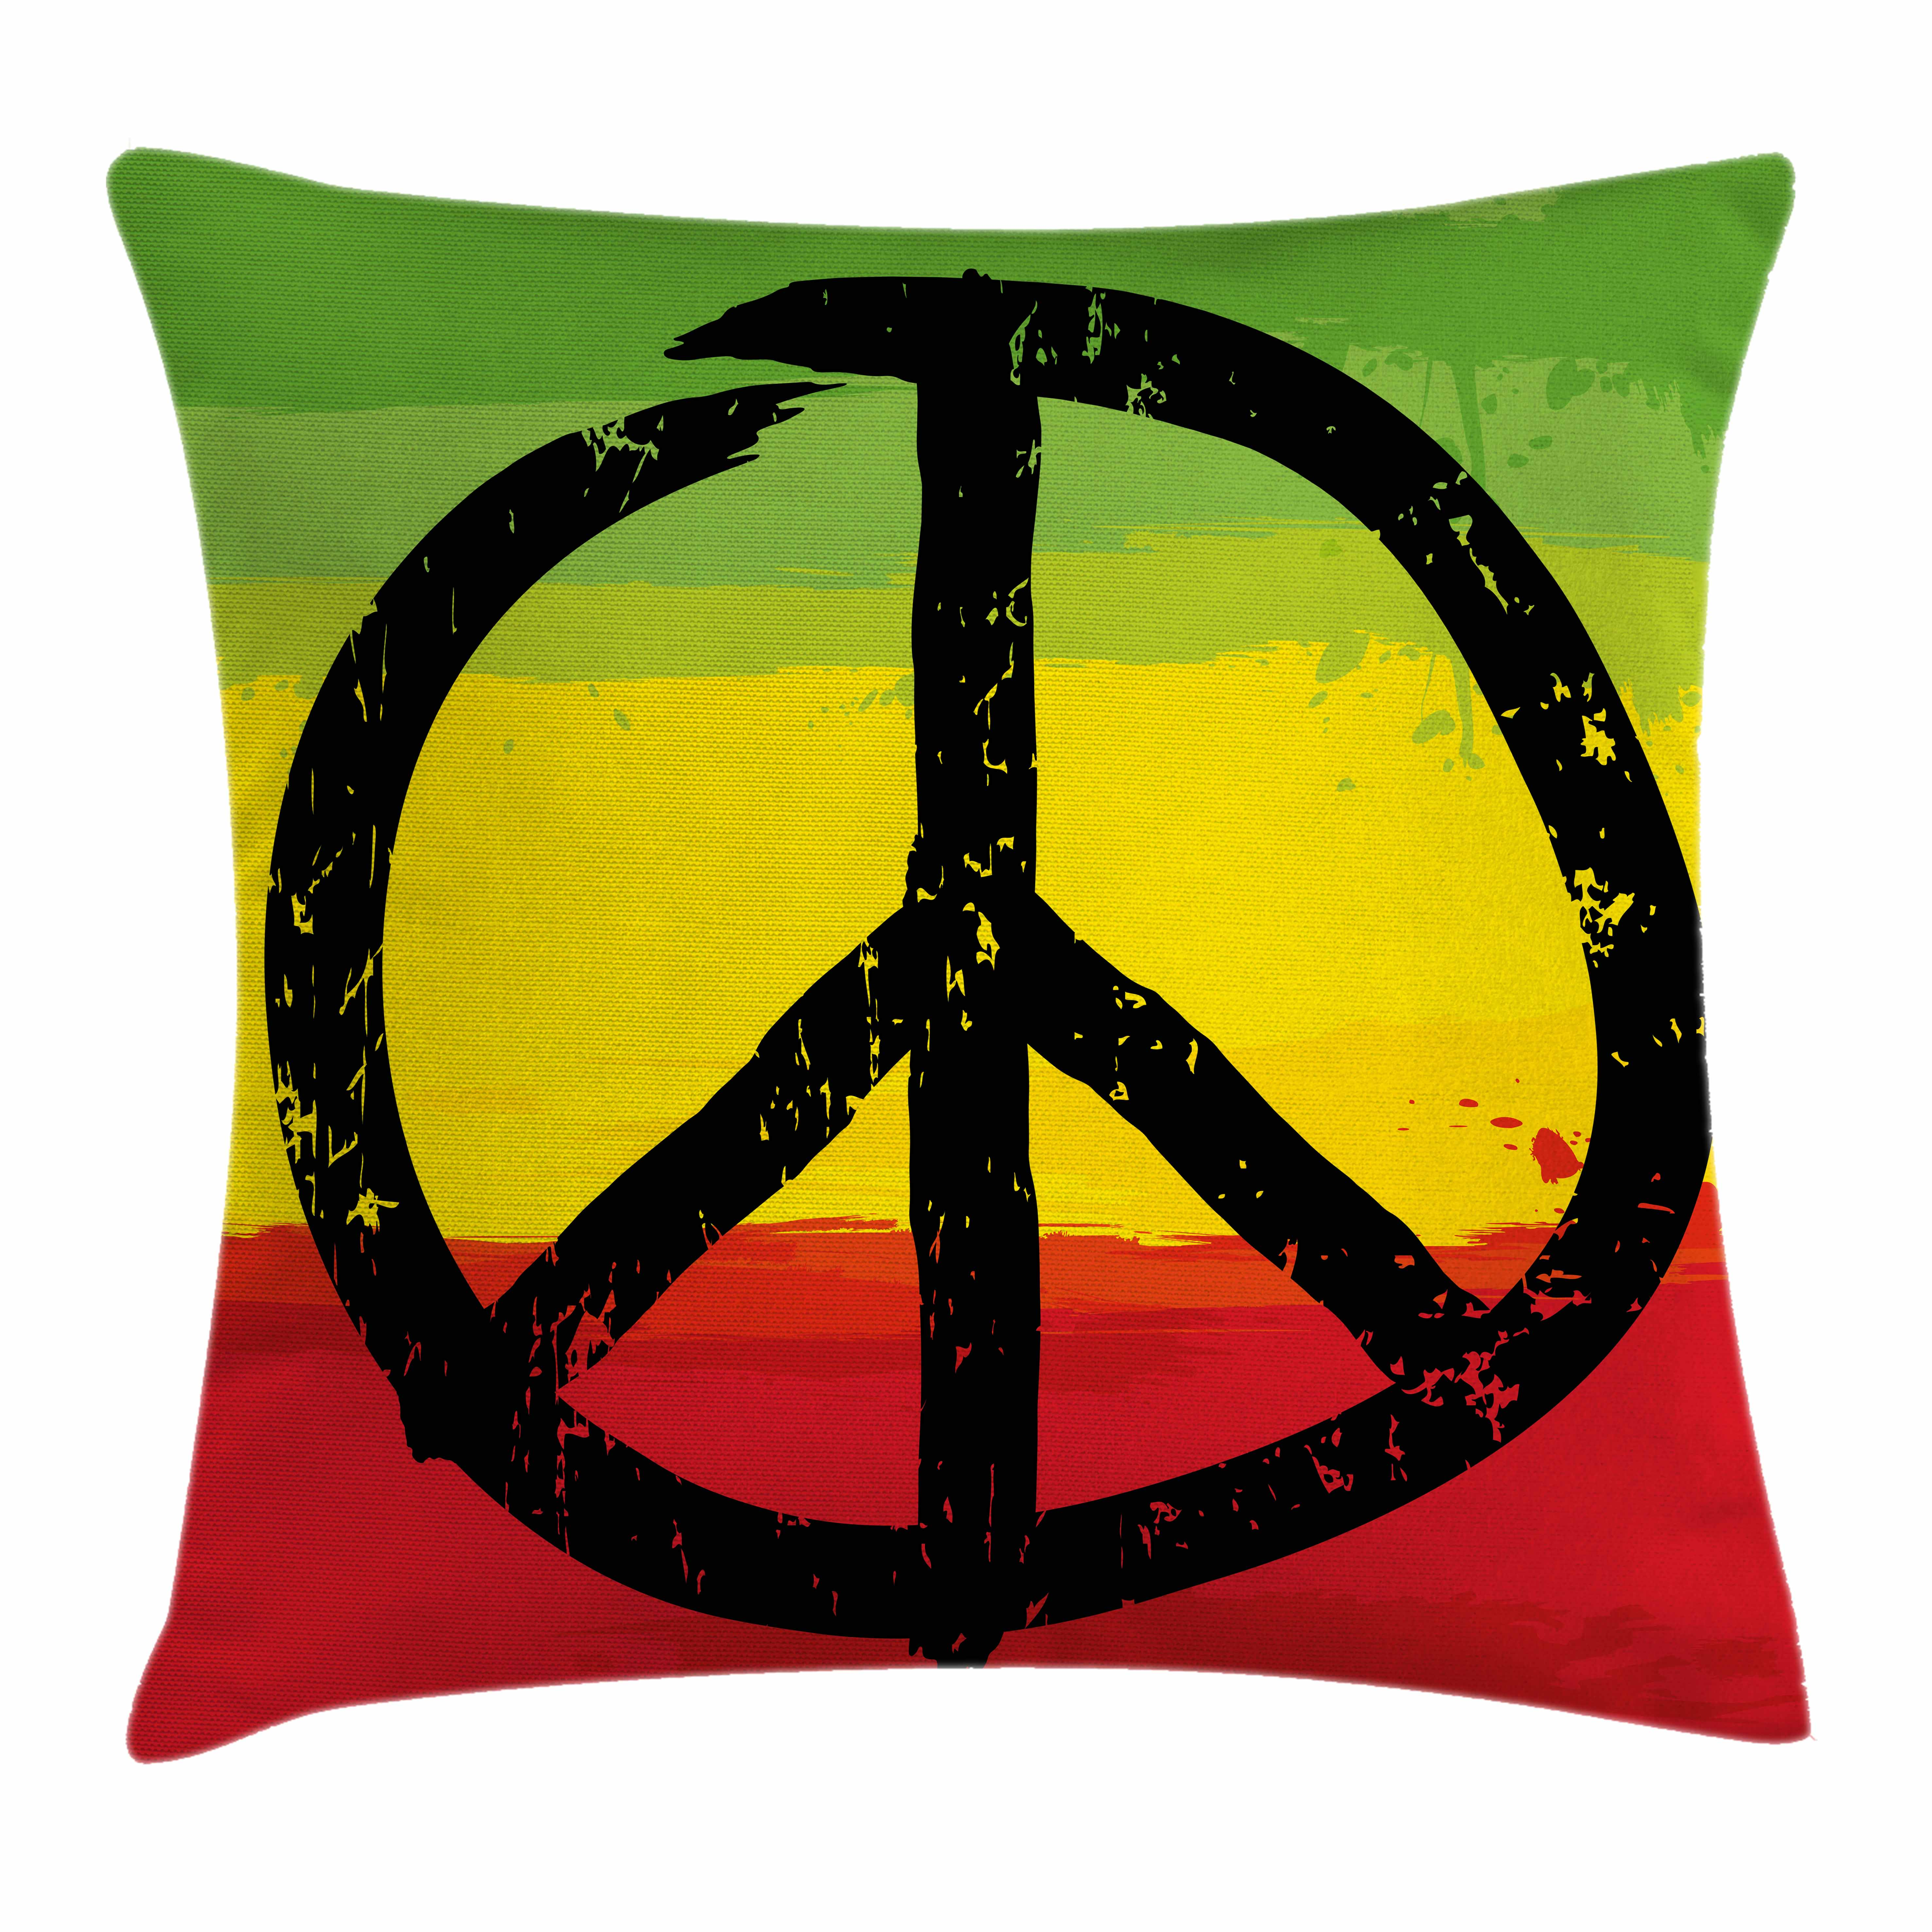 Rasta Throw Pillow Cushion Cover, Grunge Style Watercolor Design African Flag Colors Hippie Peace Sign, Decorative Square Accent Pillow Case, 16 X 16 Inches, Black Green Yellow and Red, by Ambesonne